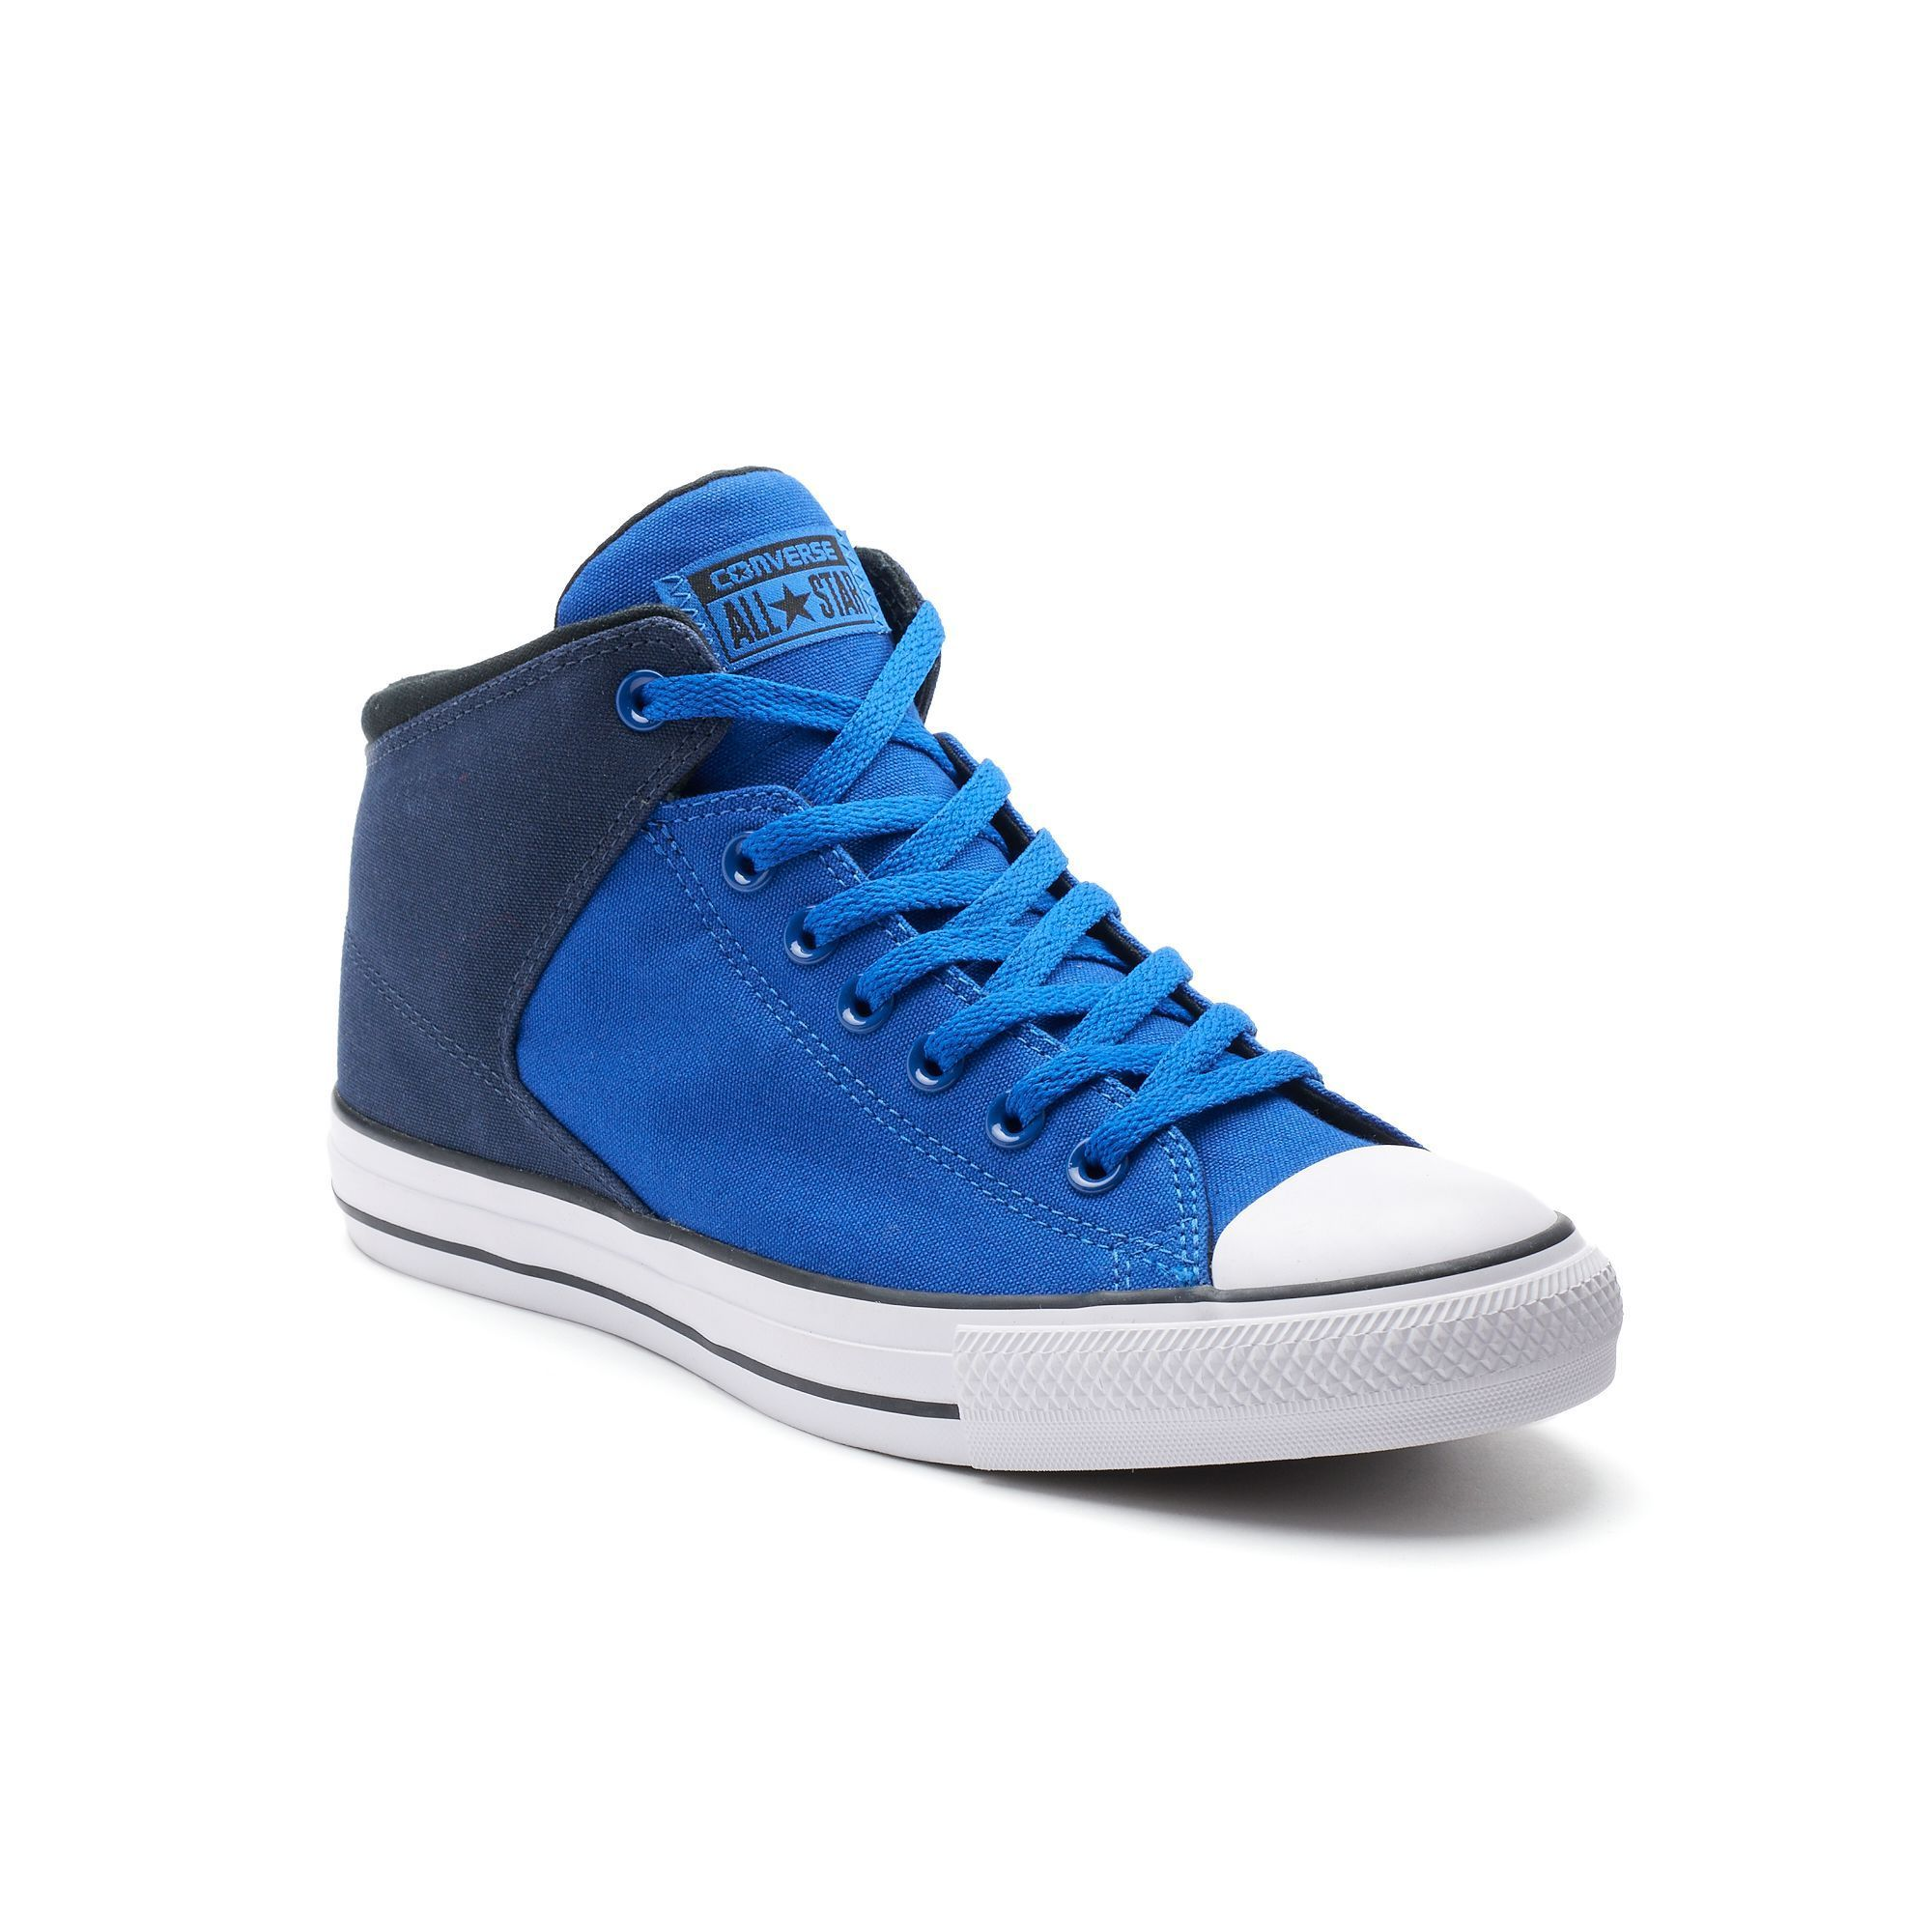 4f3c3633d6fc9a Men s Converse Chuck Taylor All Star High Street High-Top Sneakers ...